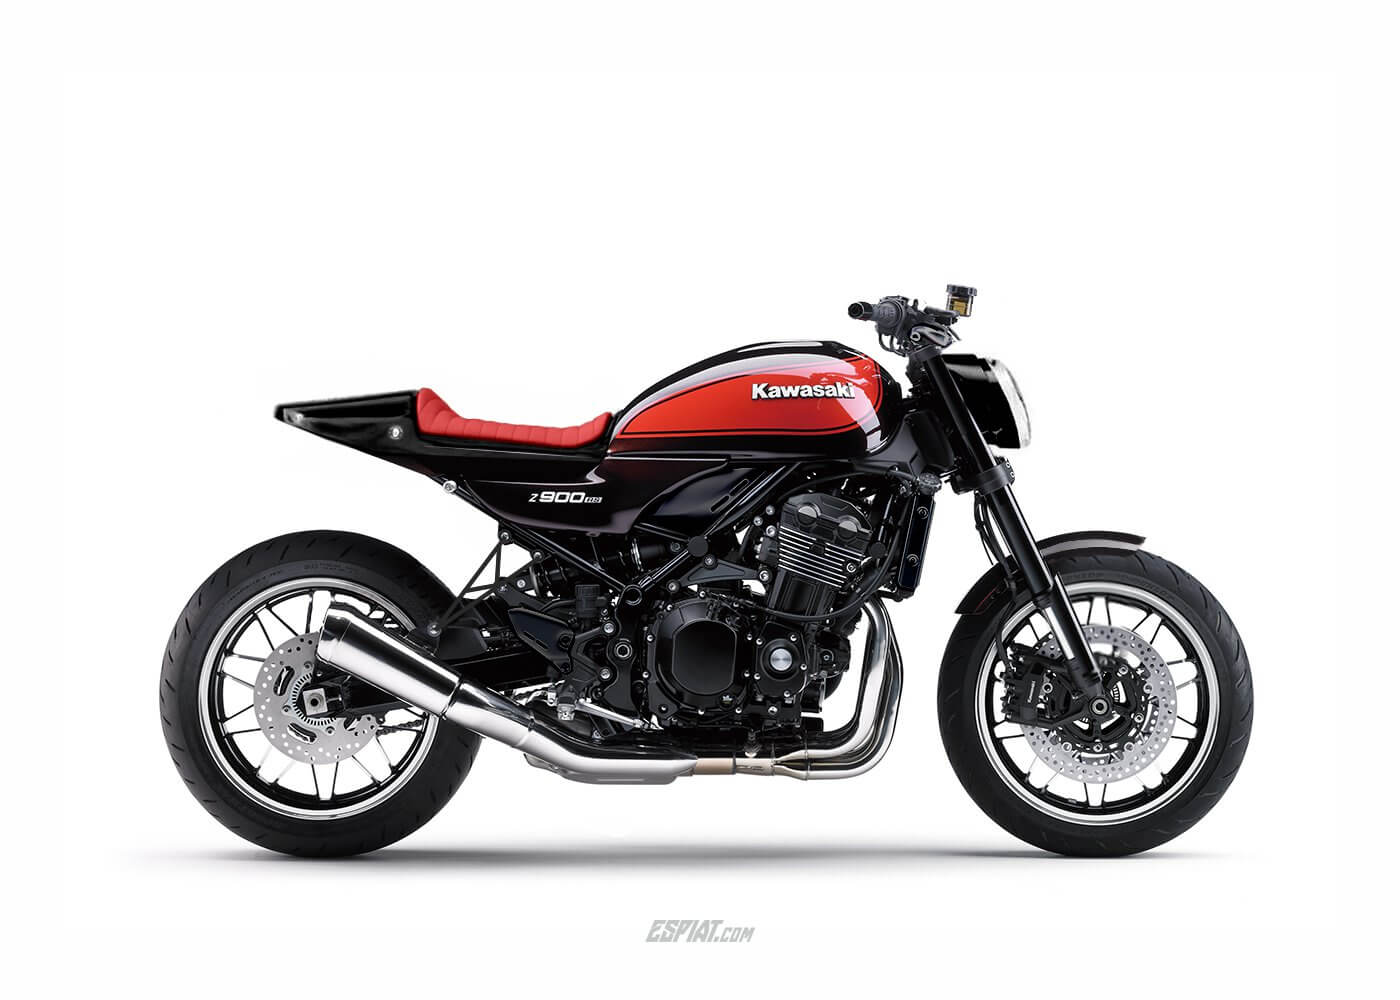 kawasaki-z900-rs-red-rs-cafe-racer-umbau-heck